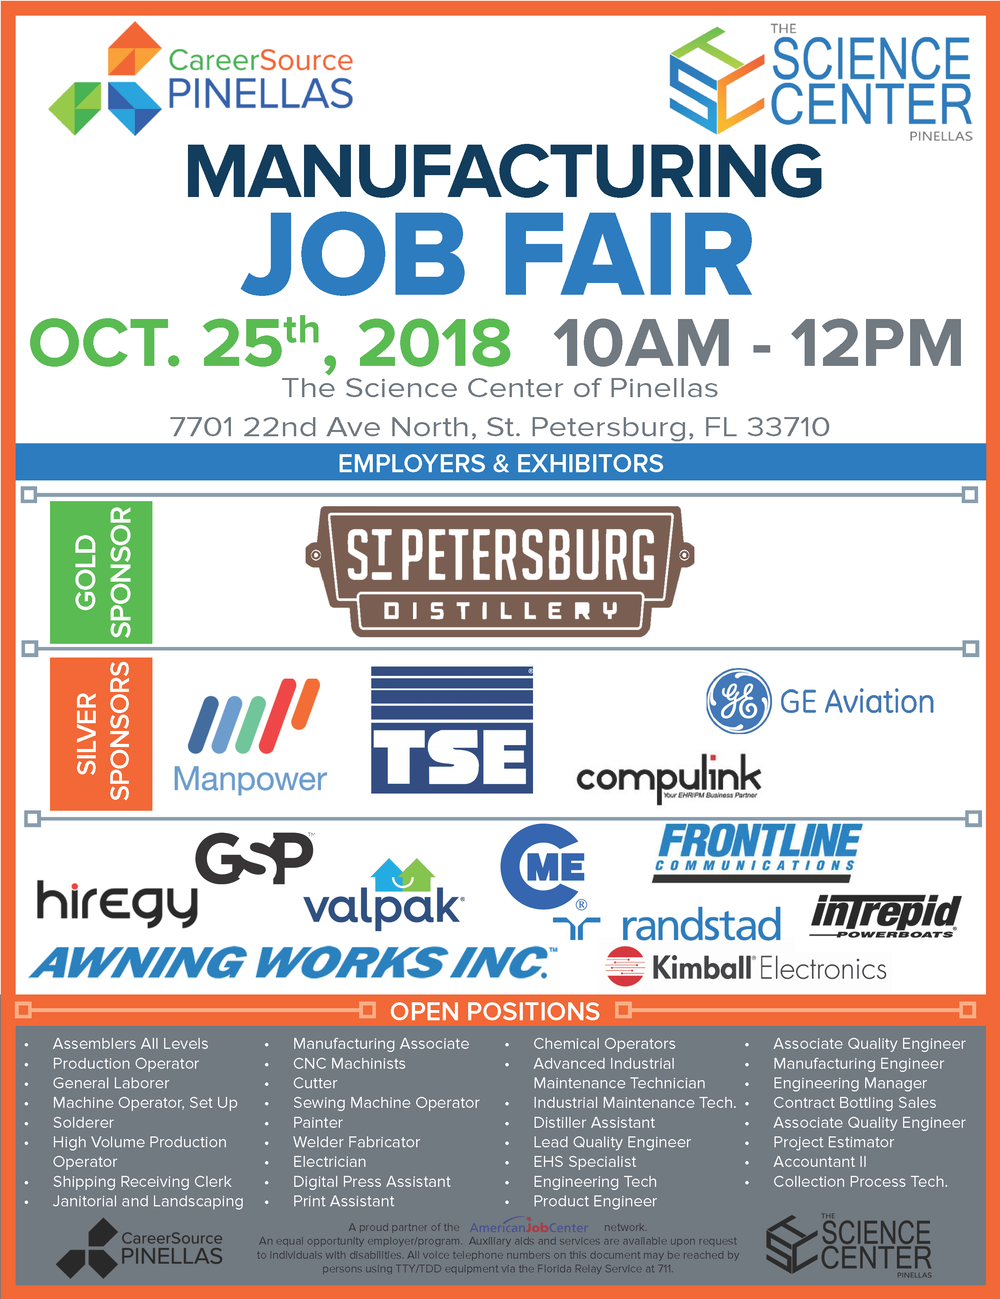 Manufacturing Month - Manufacturing Job Fair Oct 25 Employers.png